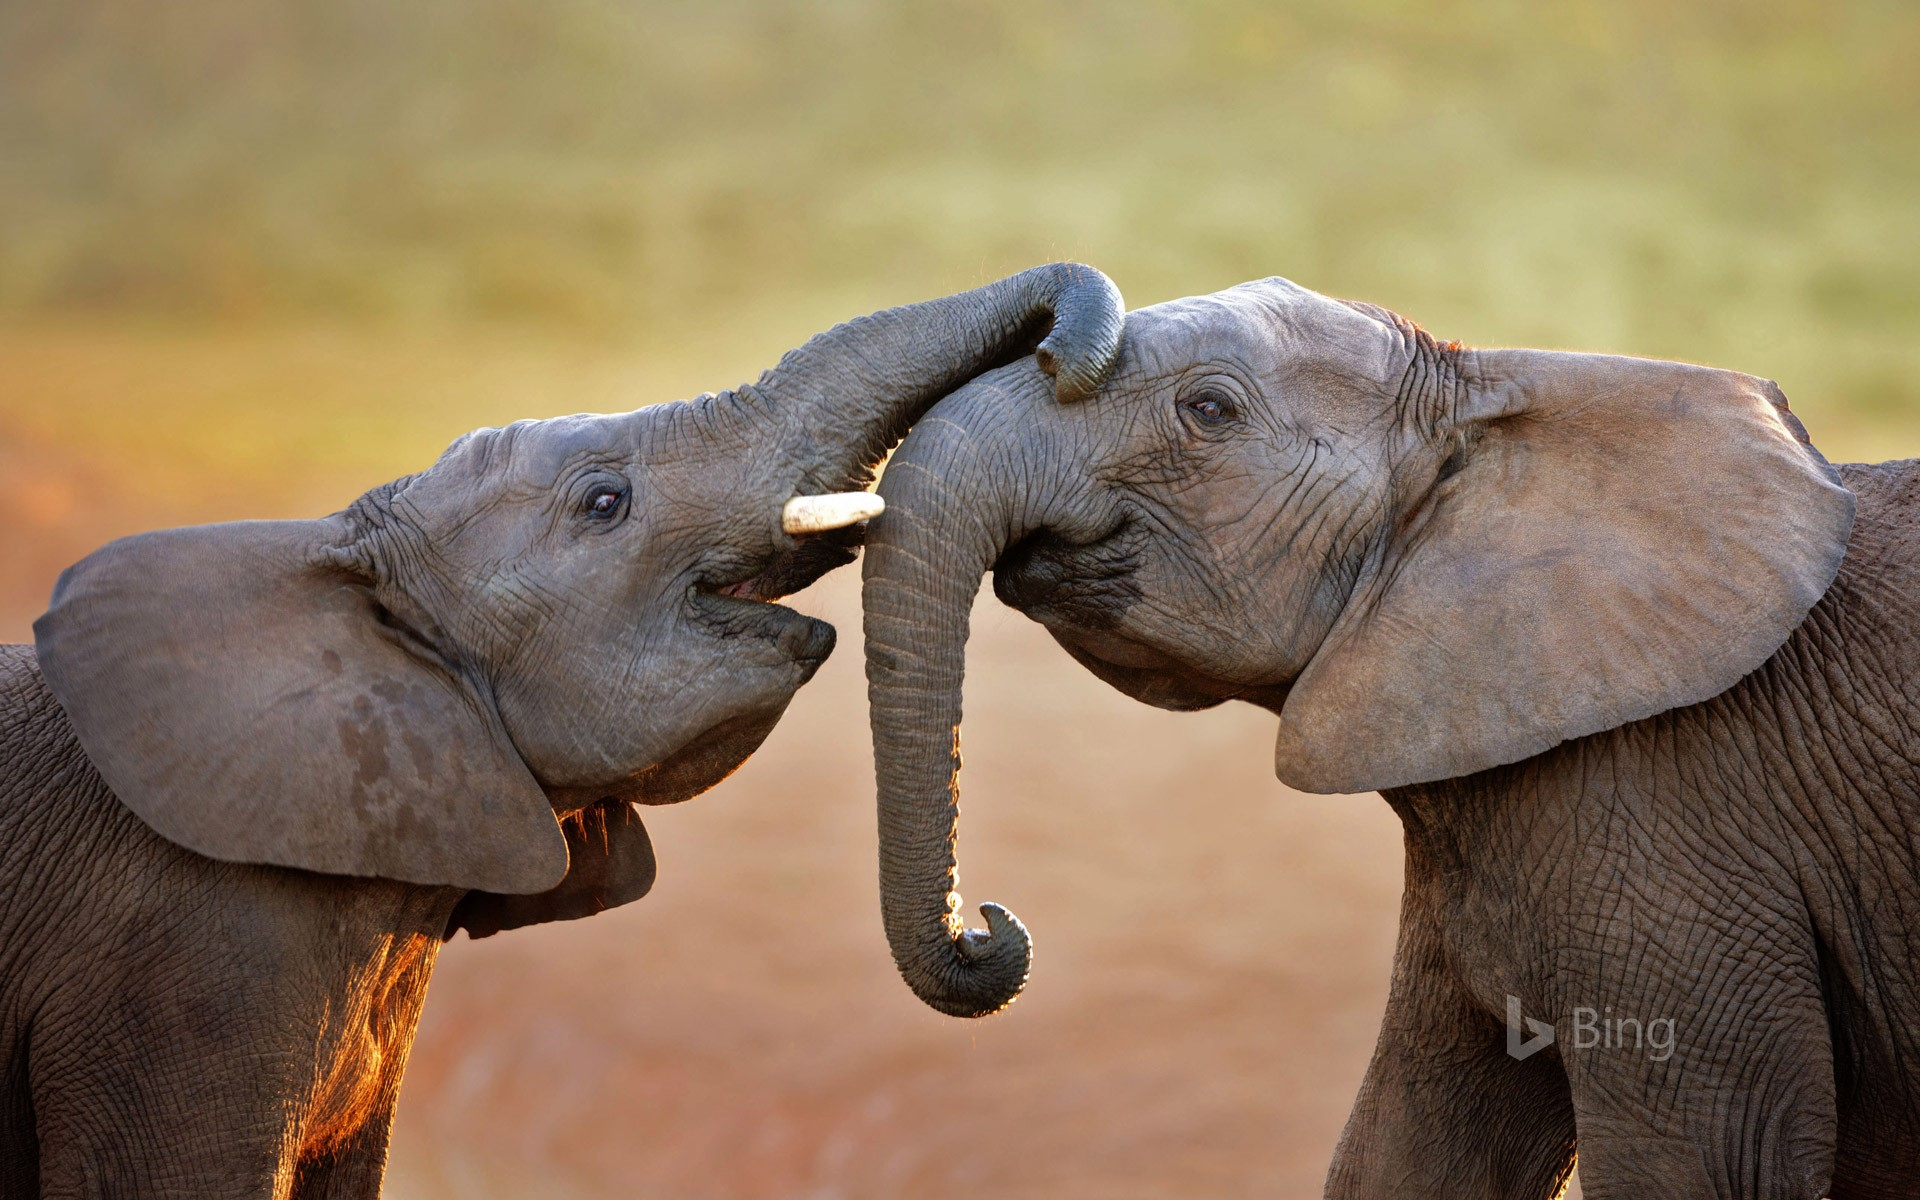 Elephants in Addo Elephant National Park, South Africa